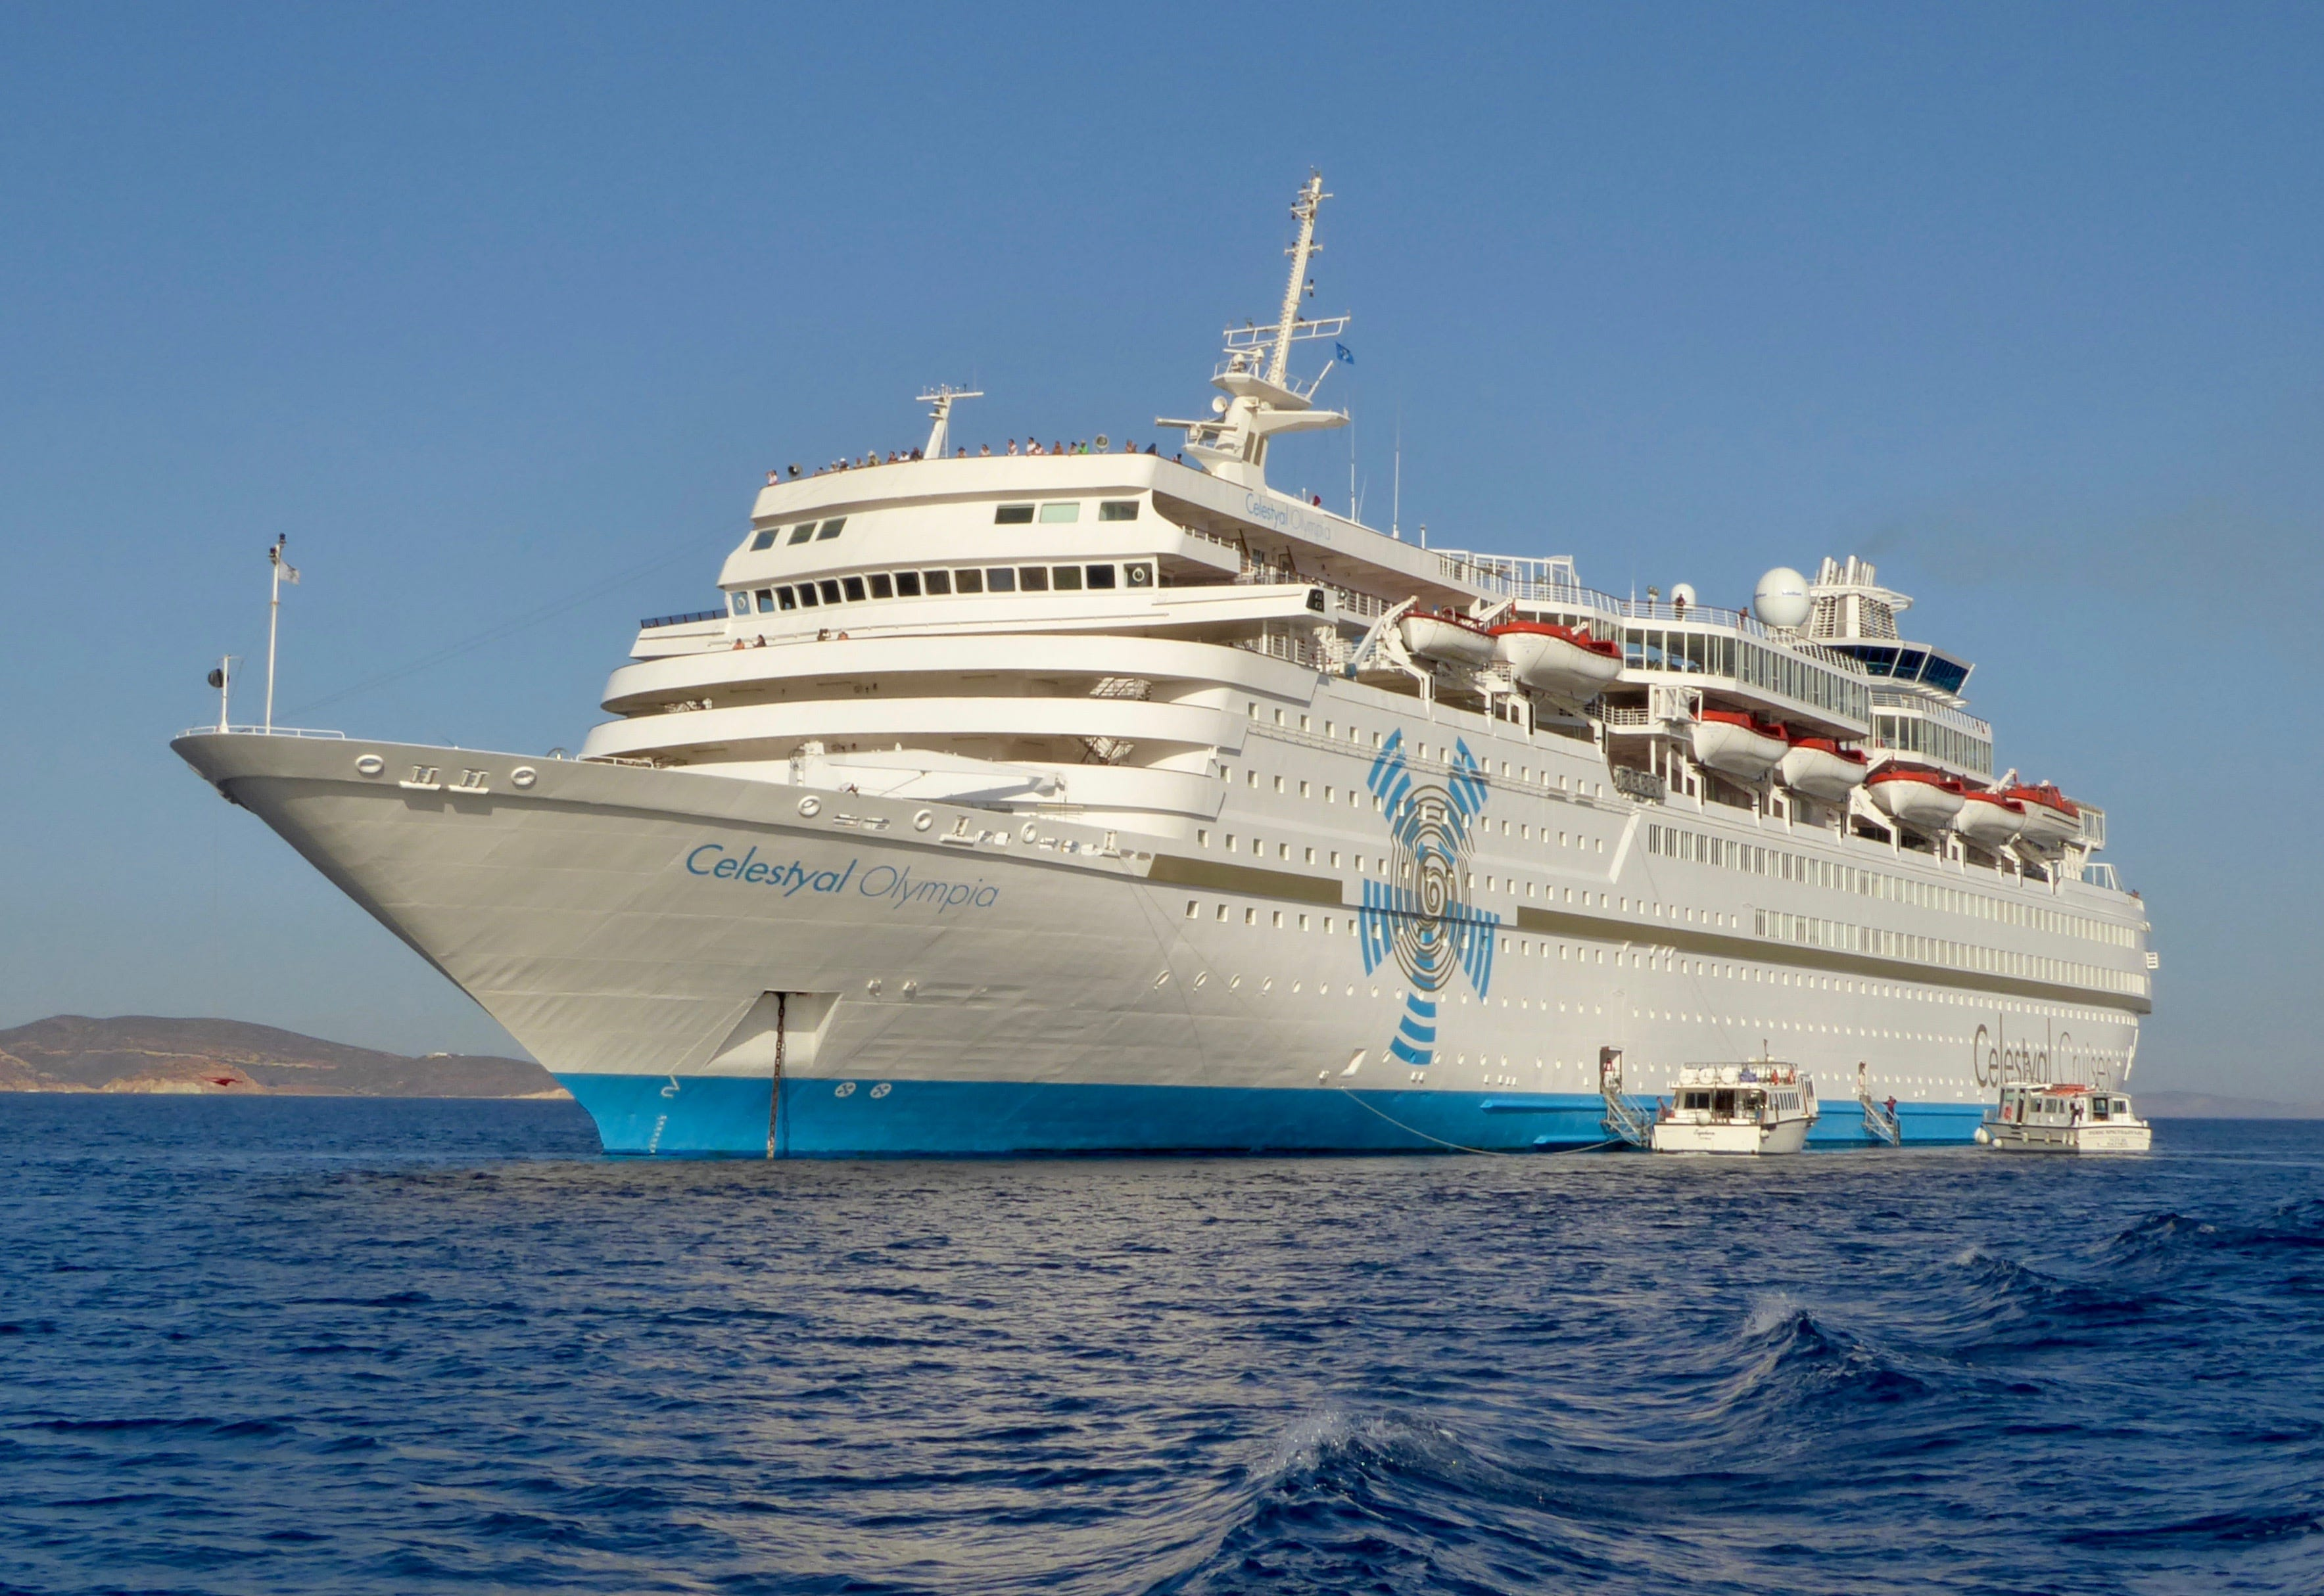 Celestyal Olympia A cruise ship that